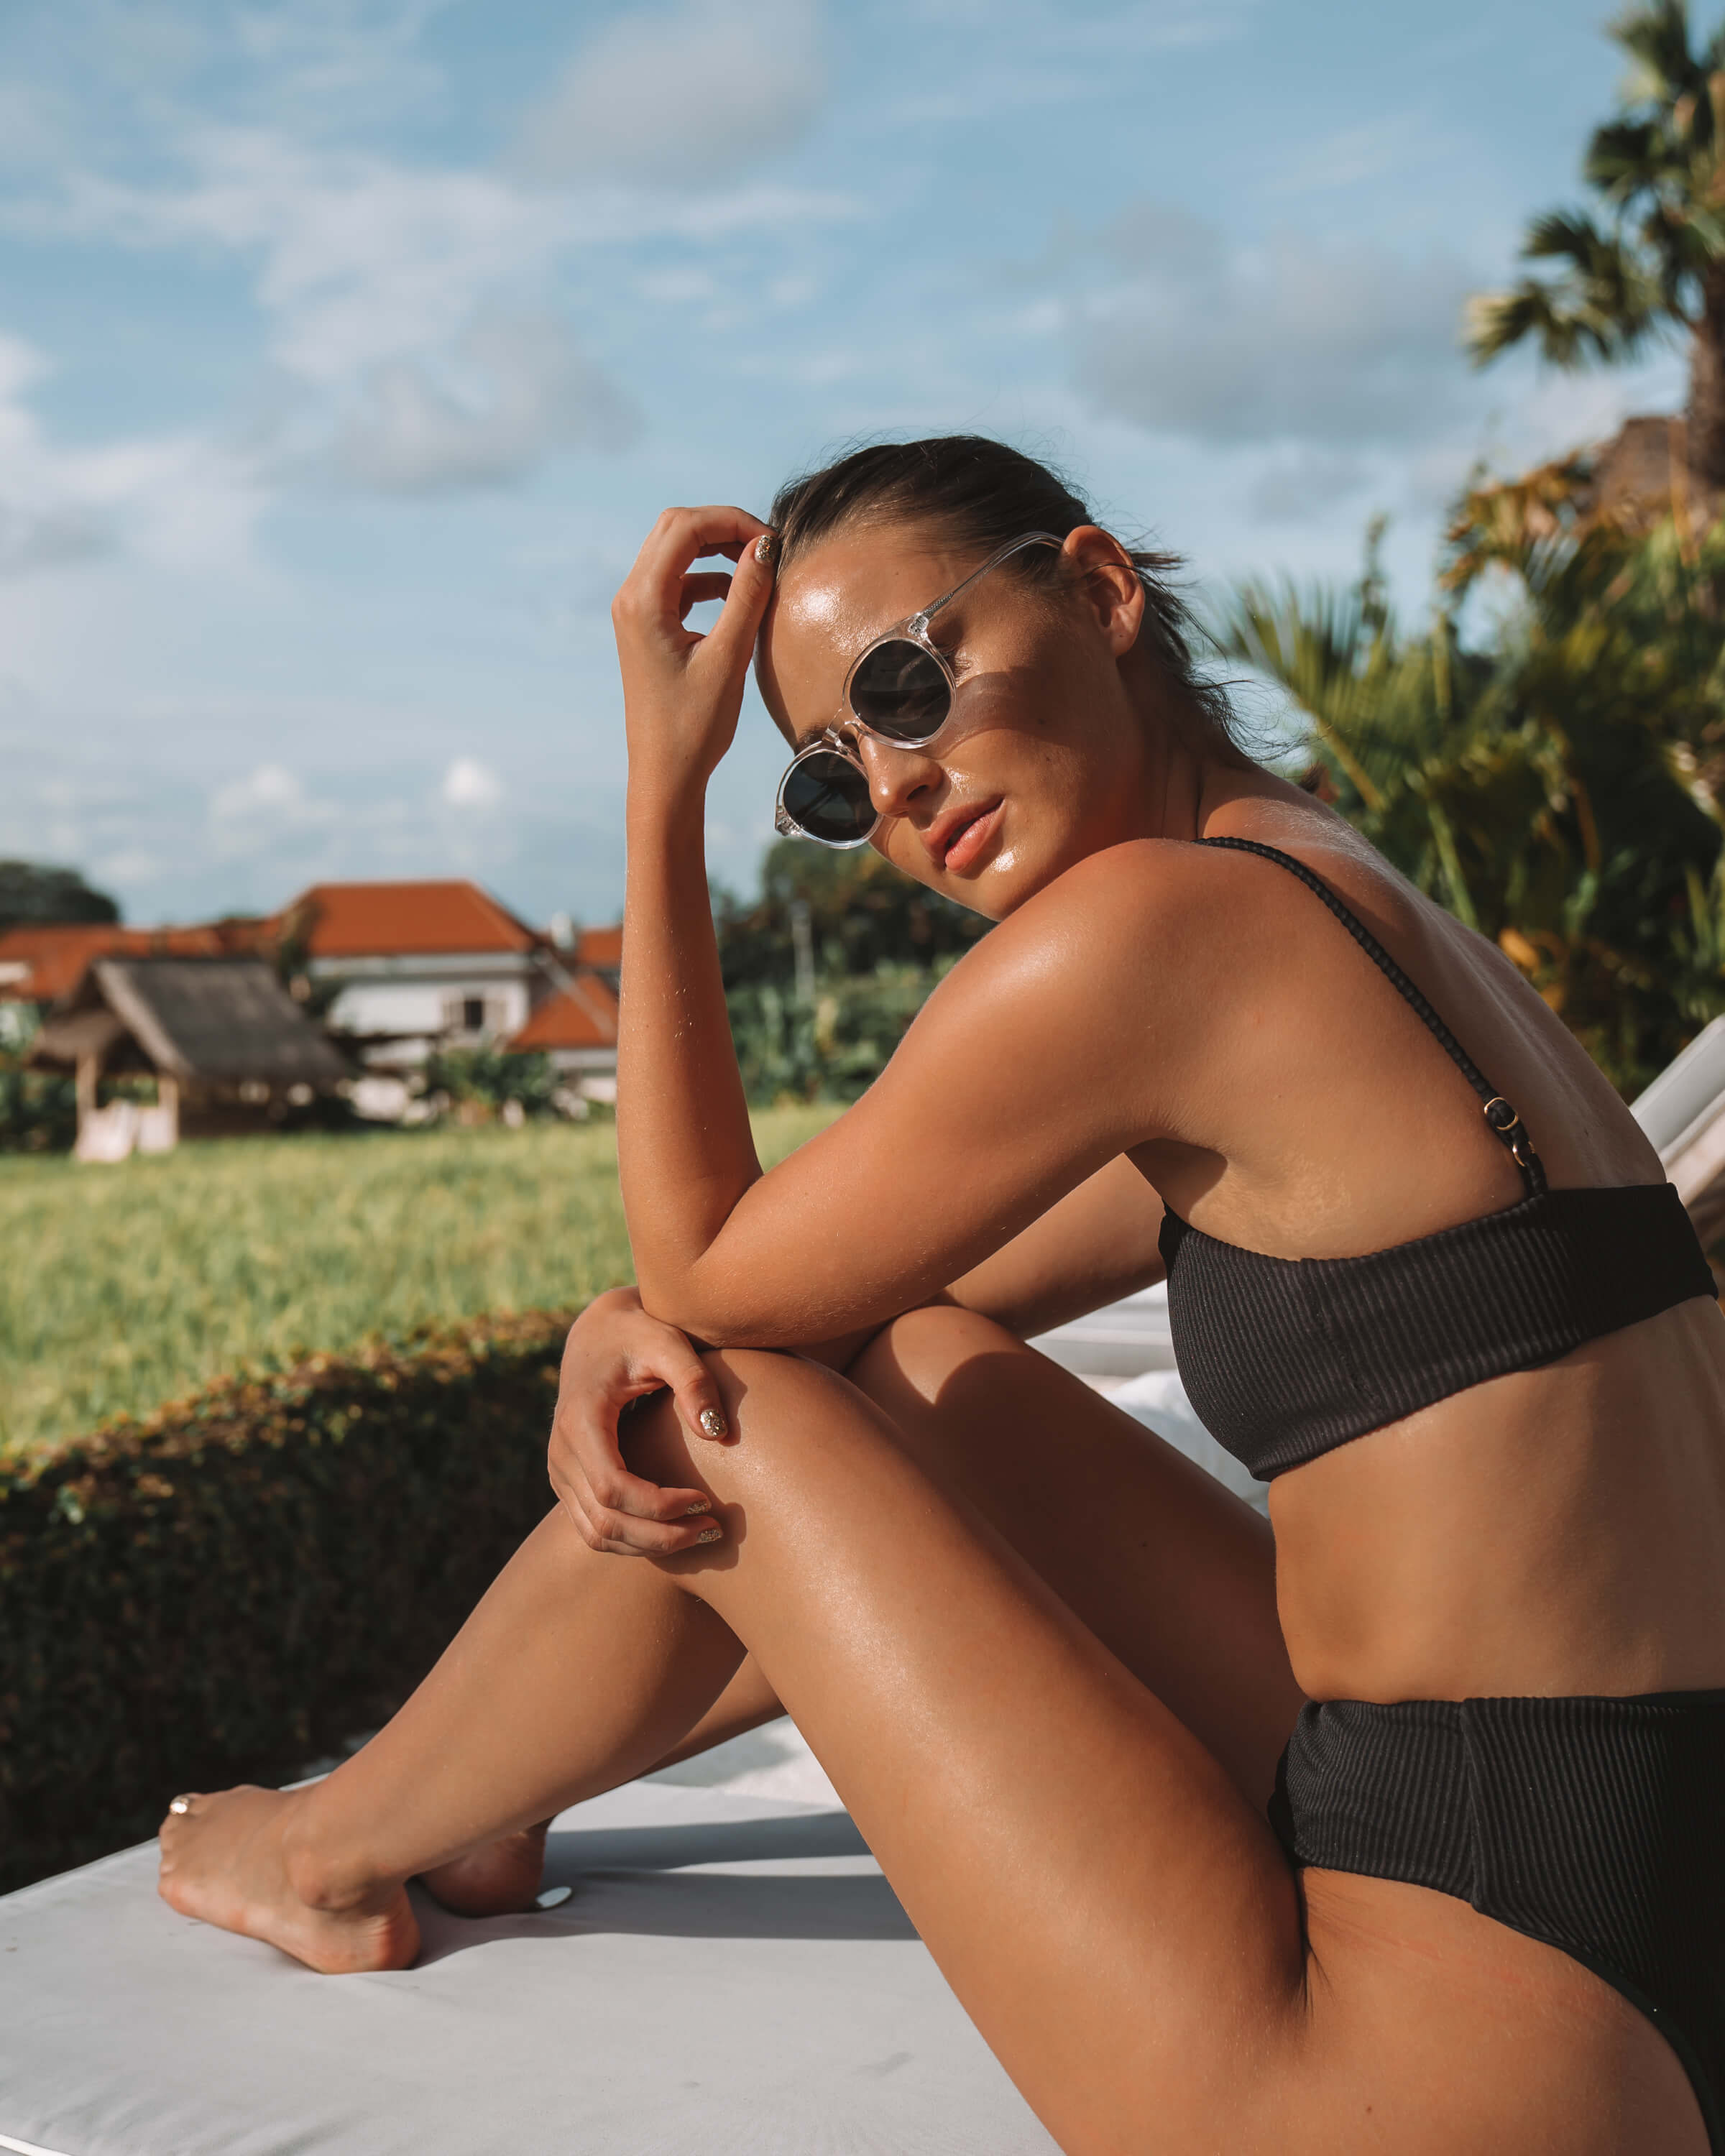 Soda Shades of Summer Australias best sunglasses eyewear online brand – Bali Model shoot_-28